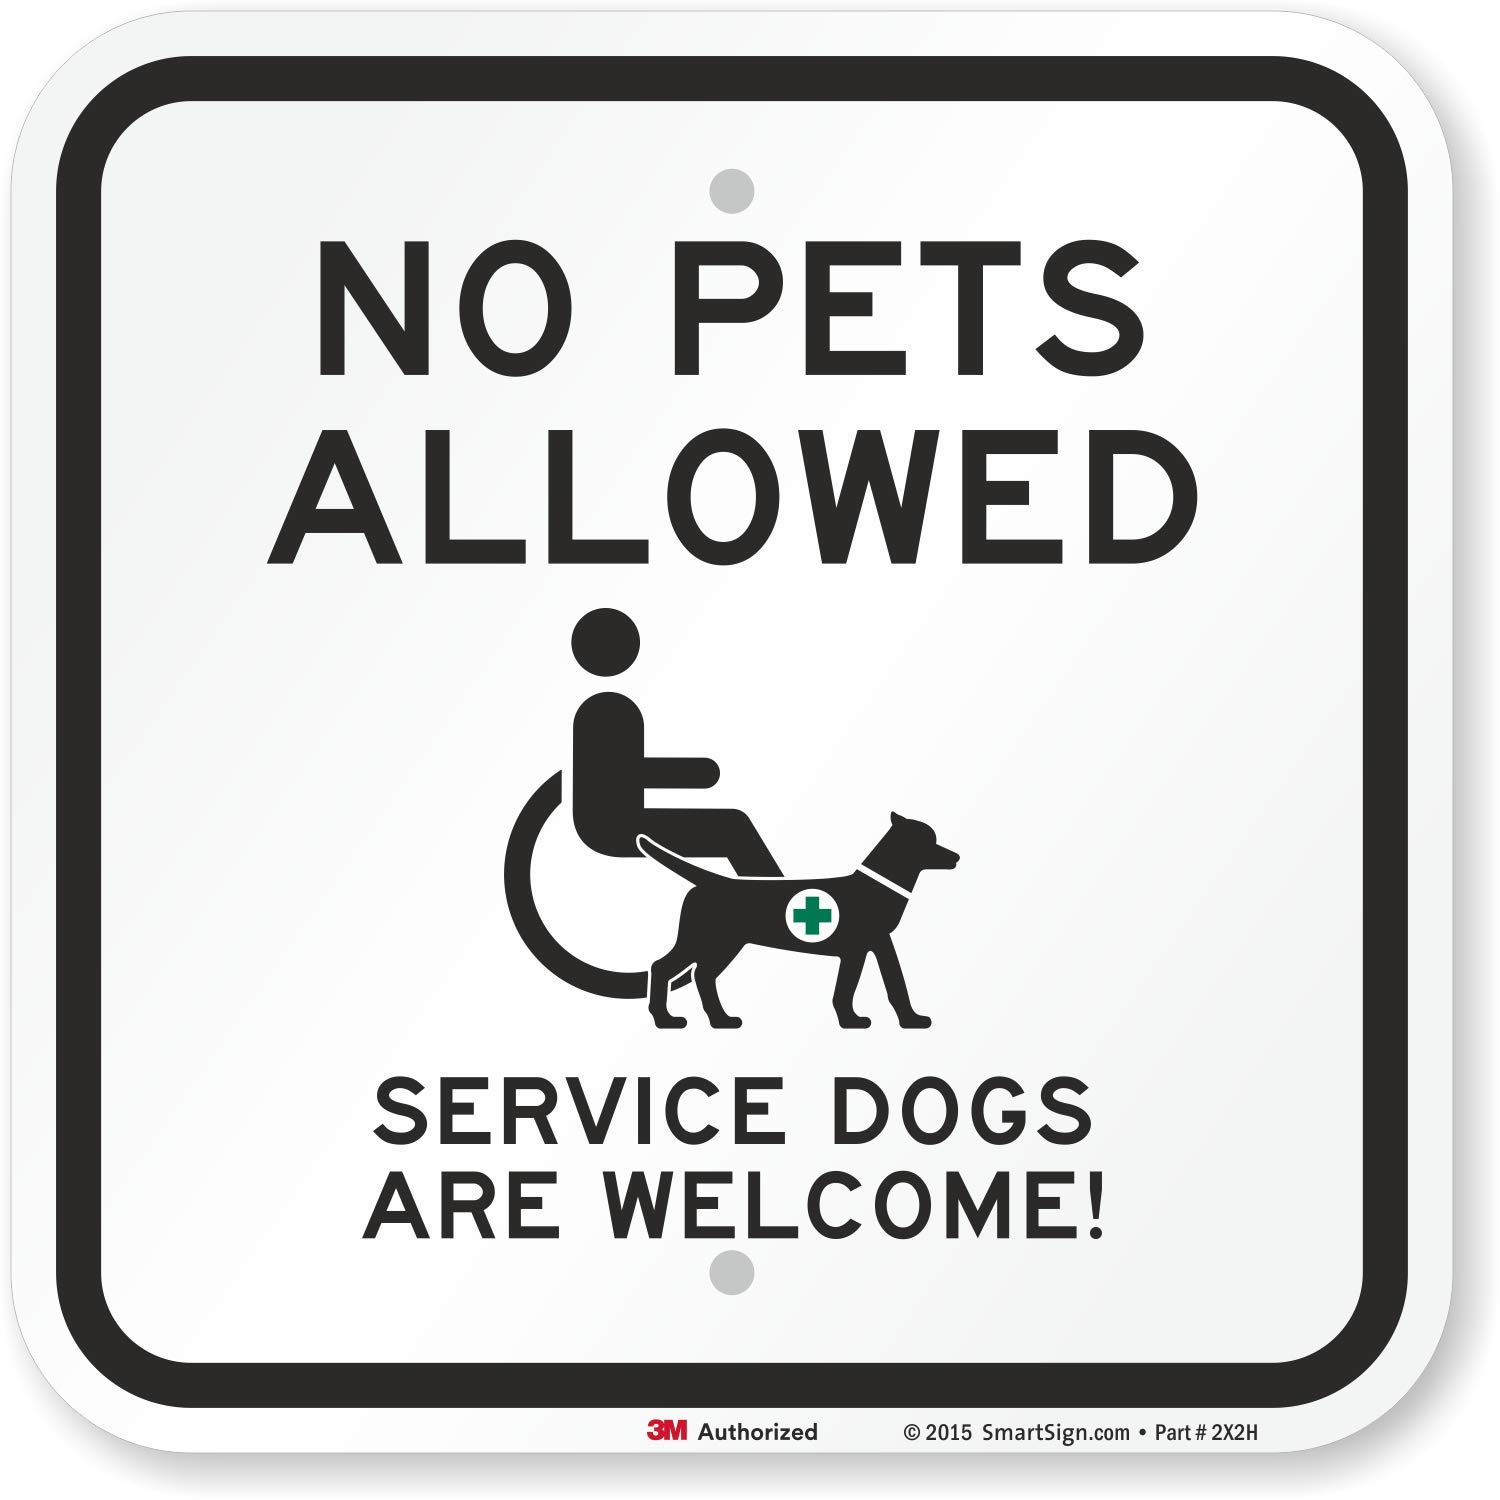 12 x 12 Aluminum Service Dogs are Welcome Sign by SmartSign No Pets Allowed